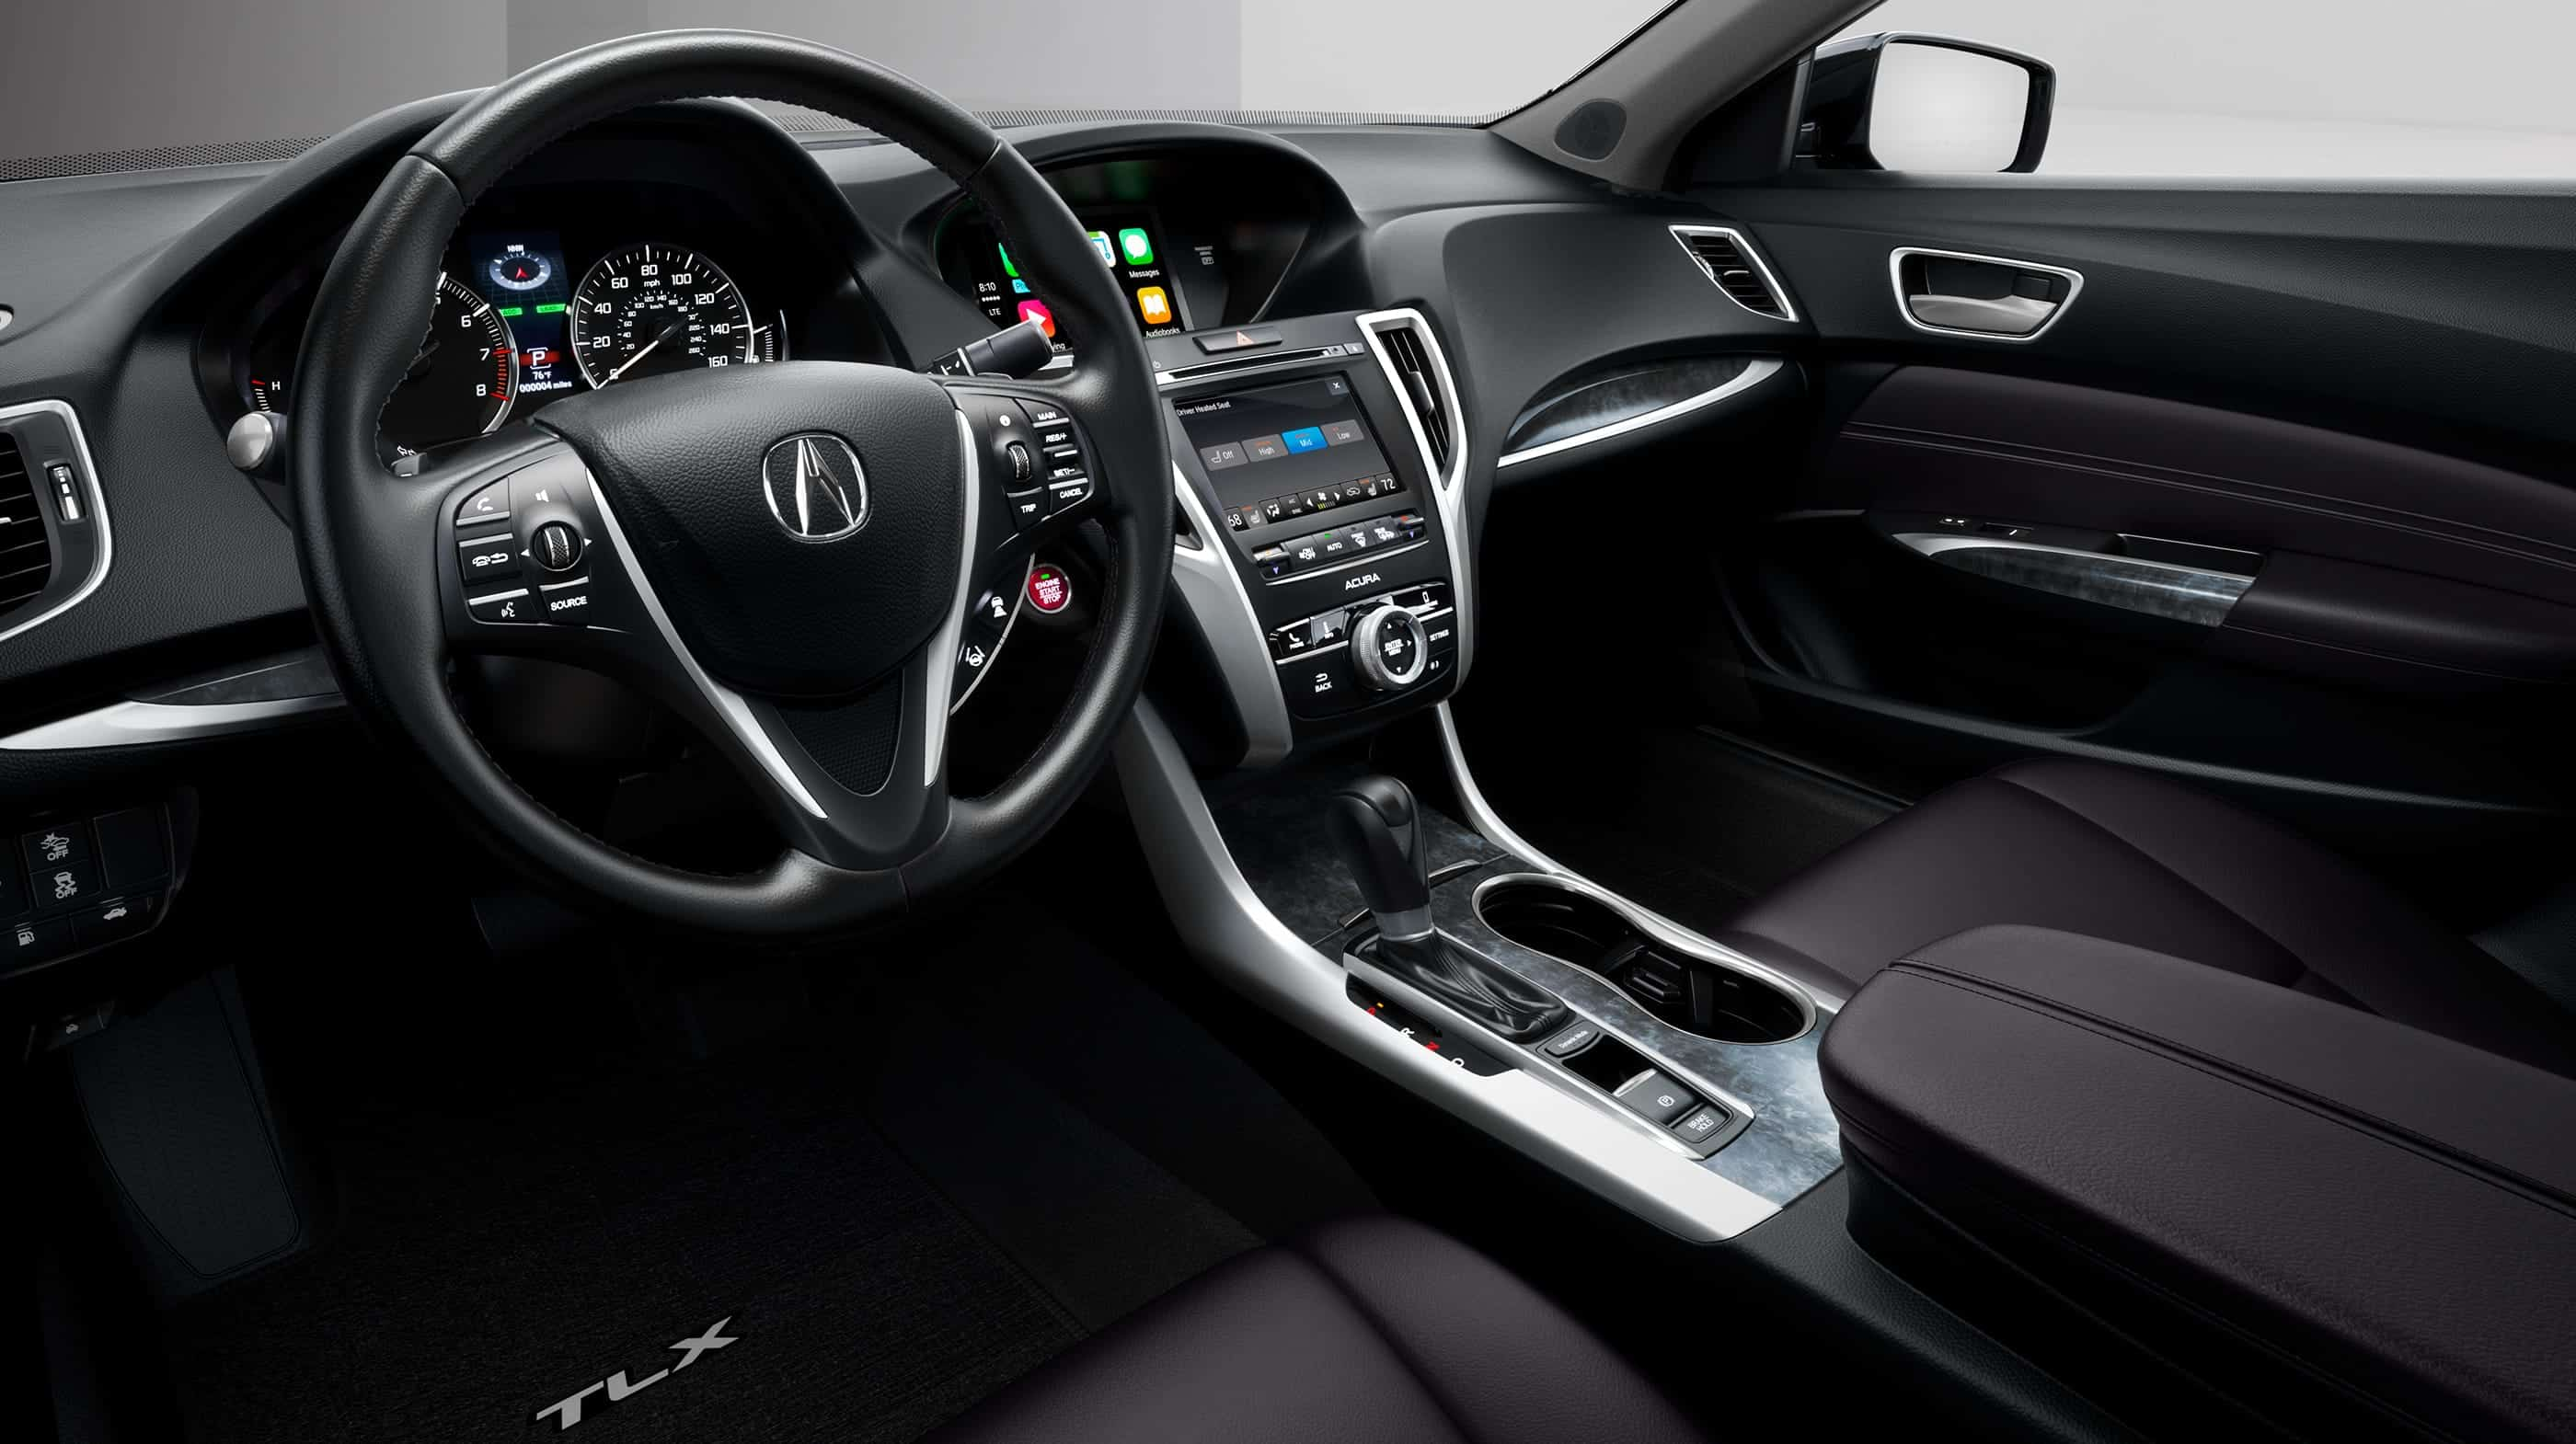 Interior of the 2020 Acura TLX